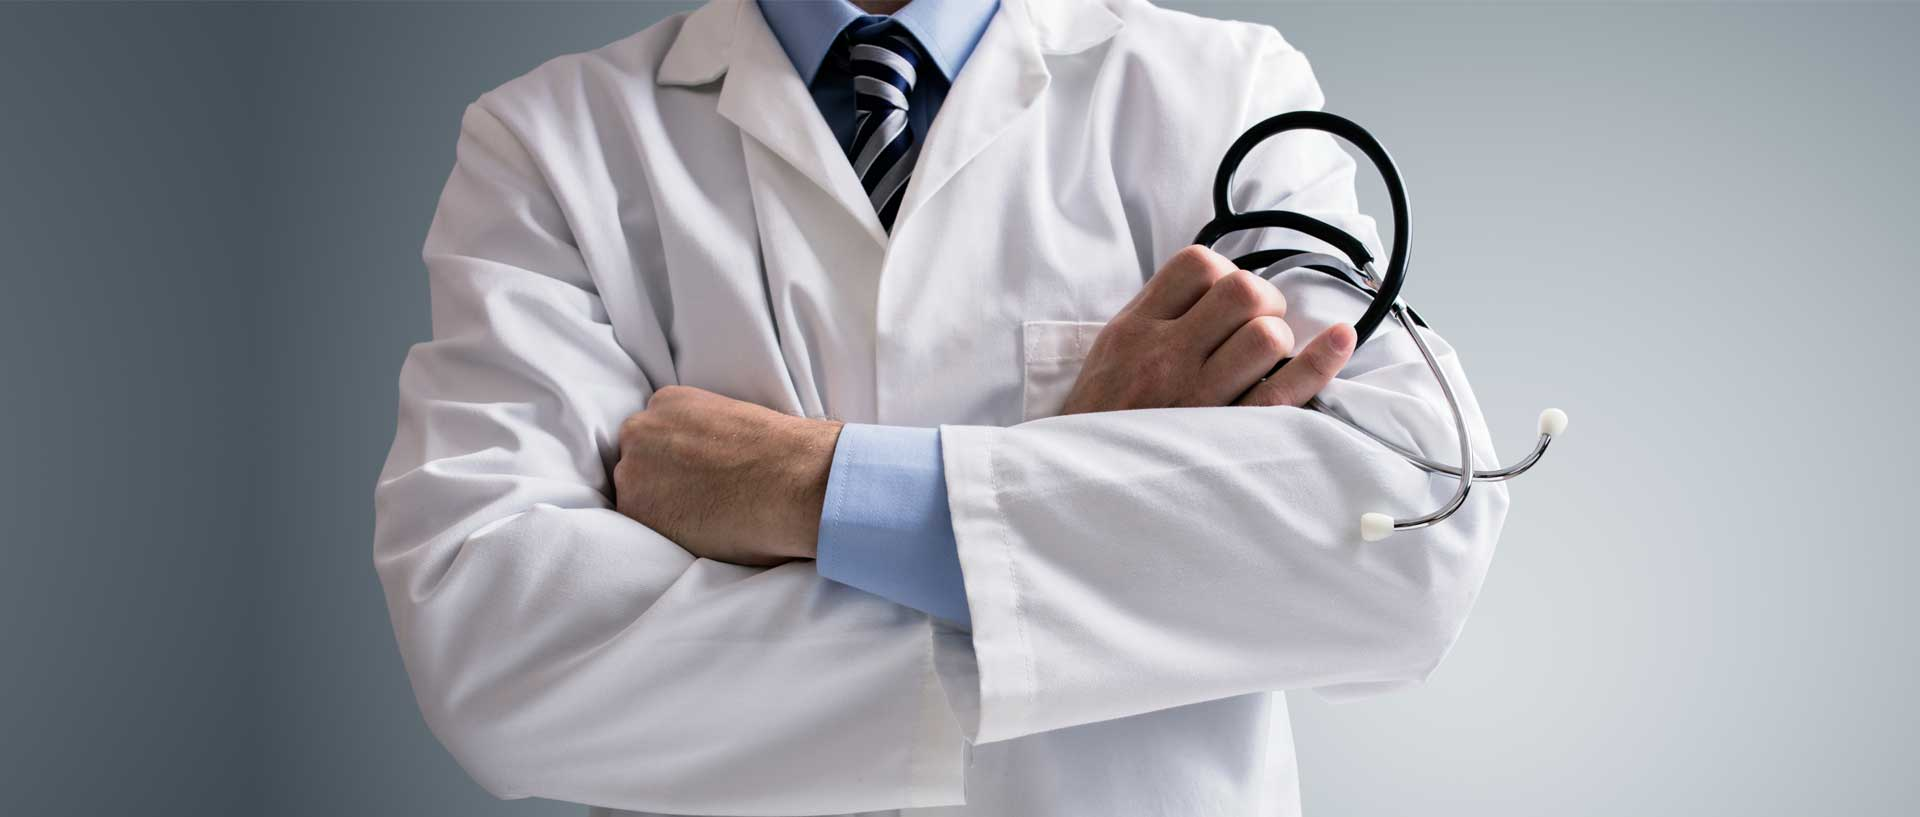 New Doctor Ratings In 8 States Consumer Reports